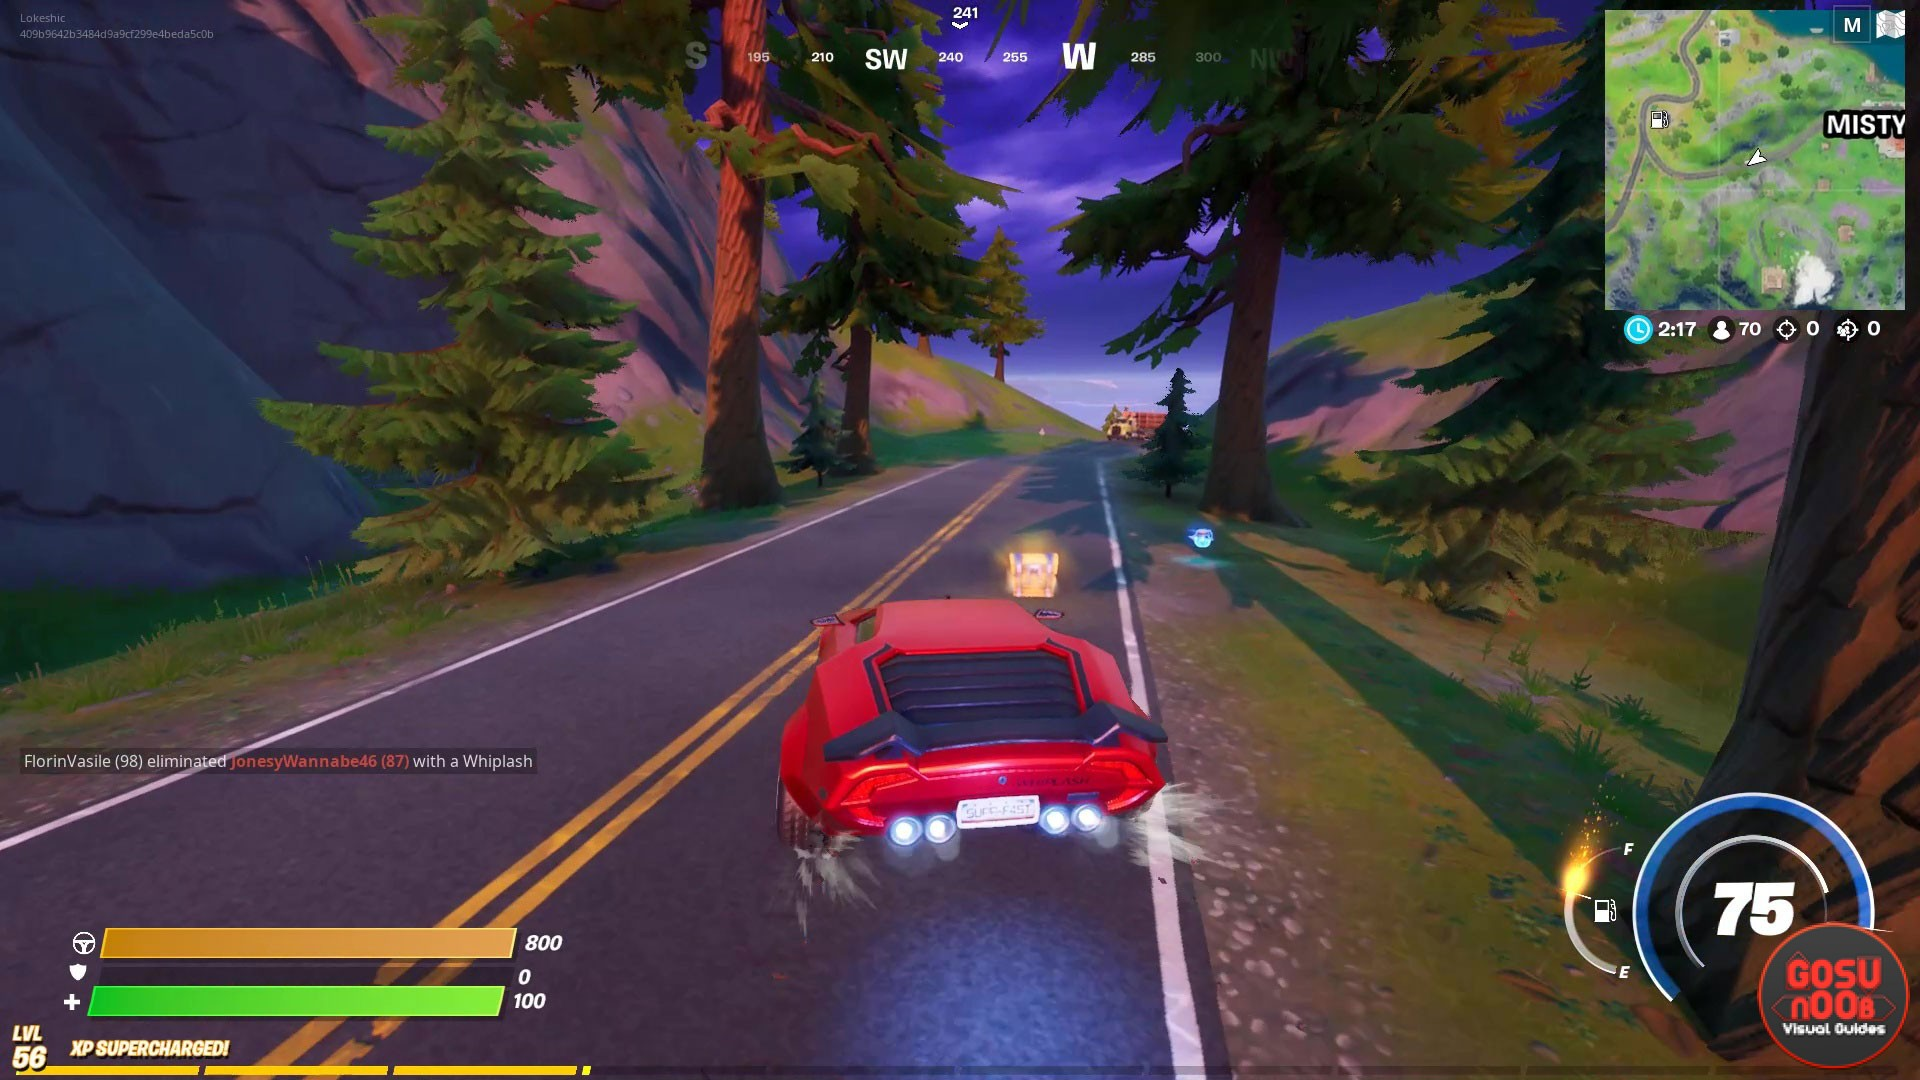 Car Locations In Fortnite Small Medium Large Truck Taxi